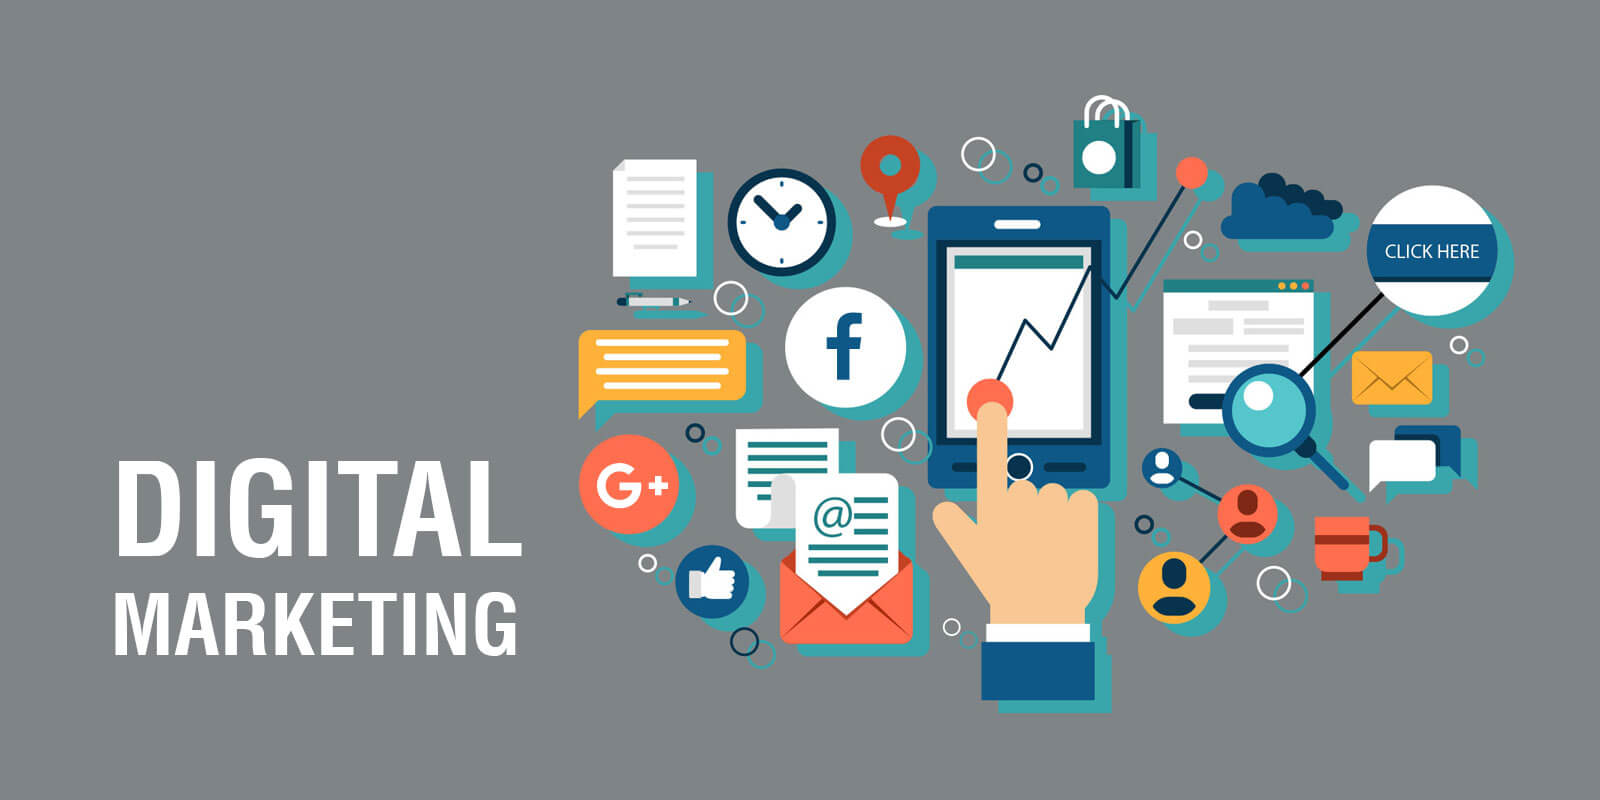 What is digital marketing and what are the advantages?